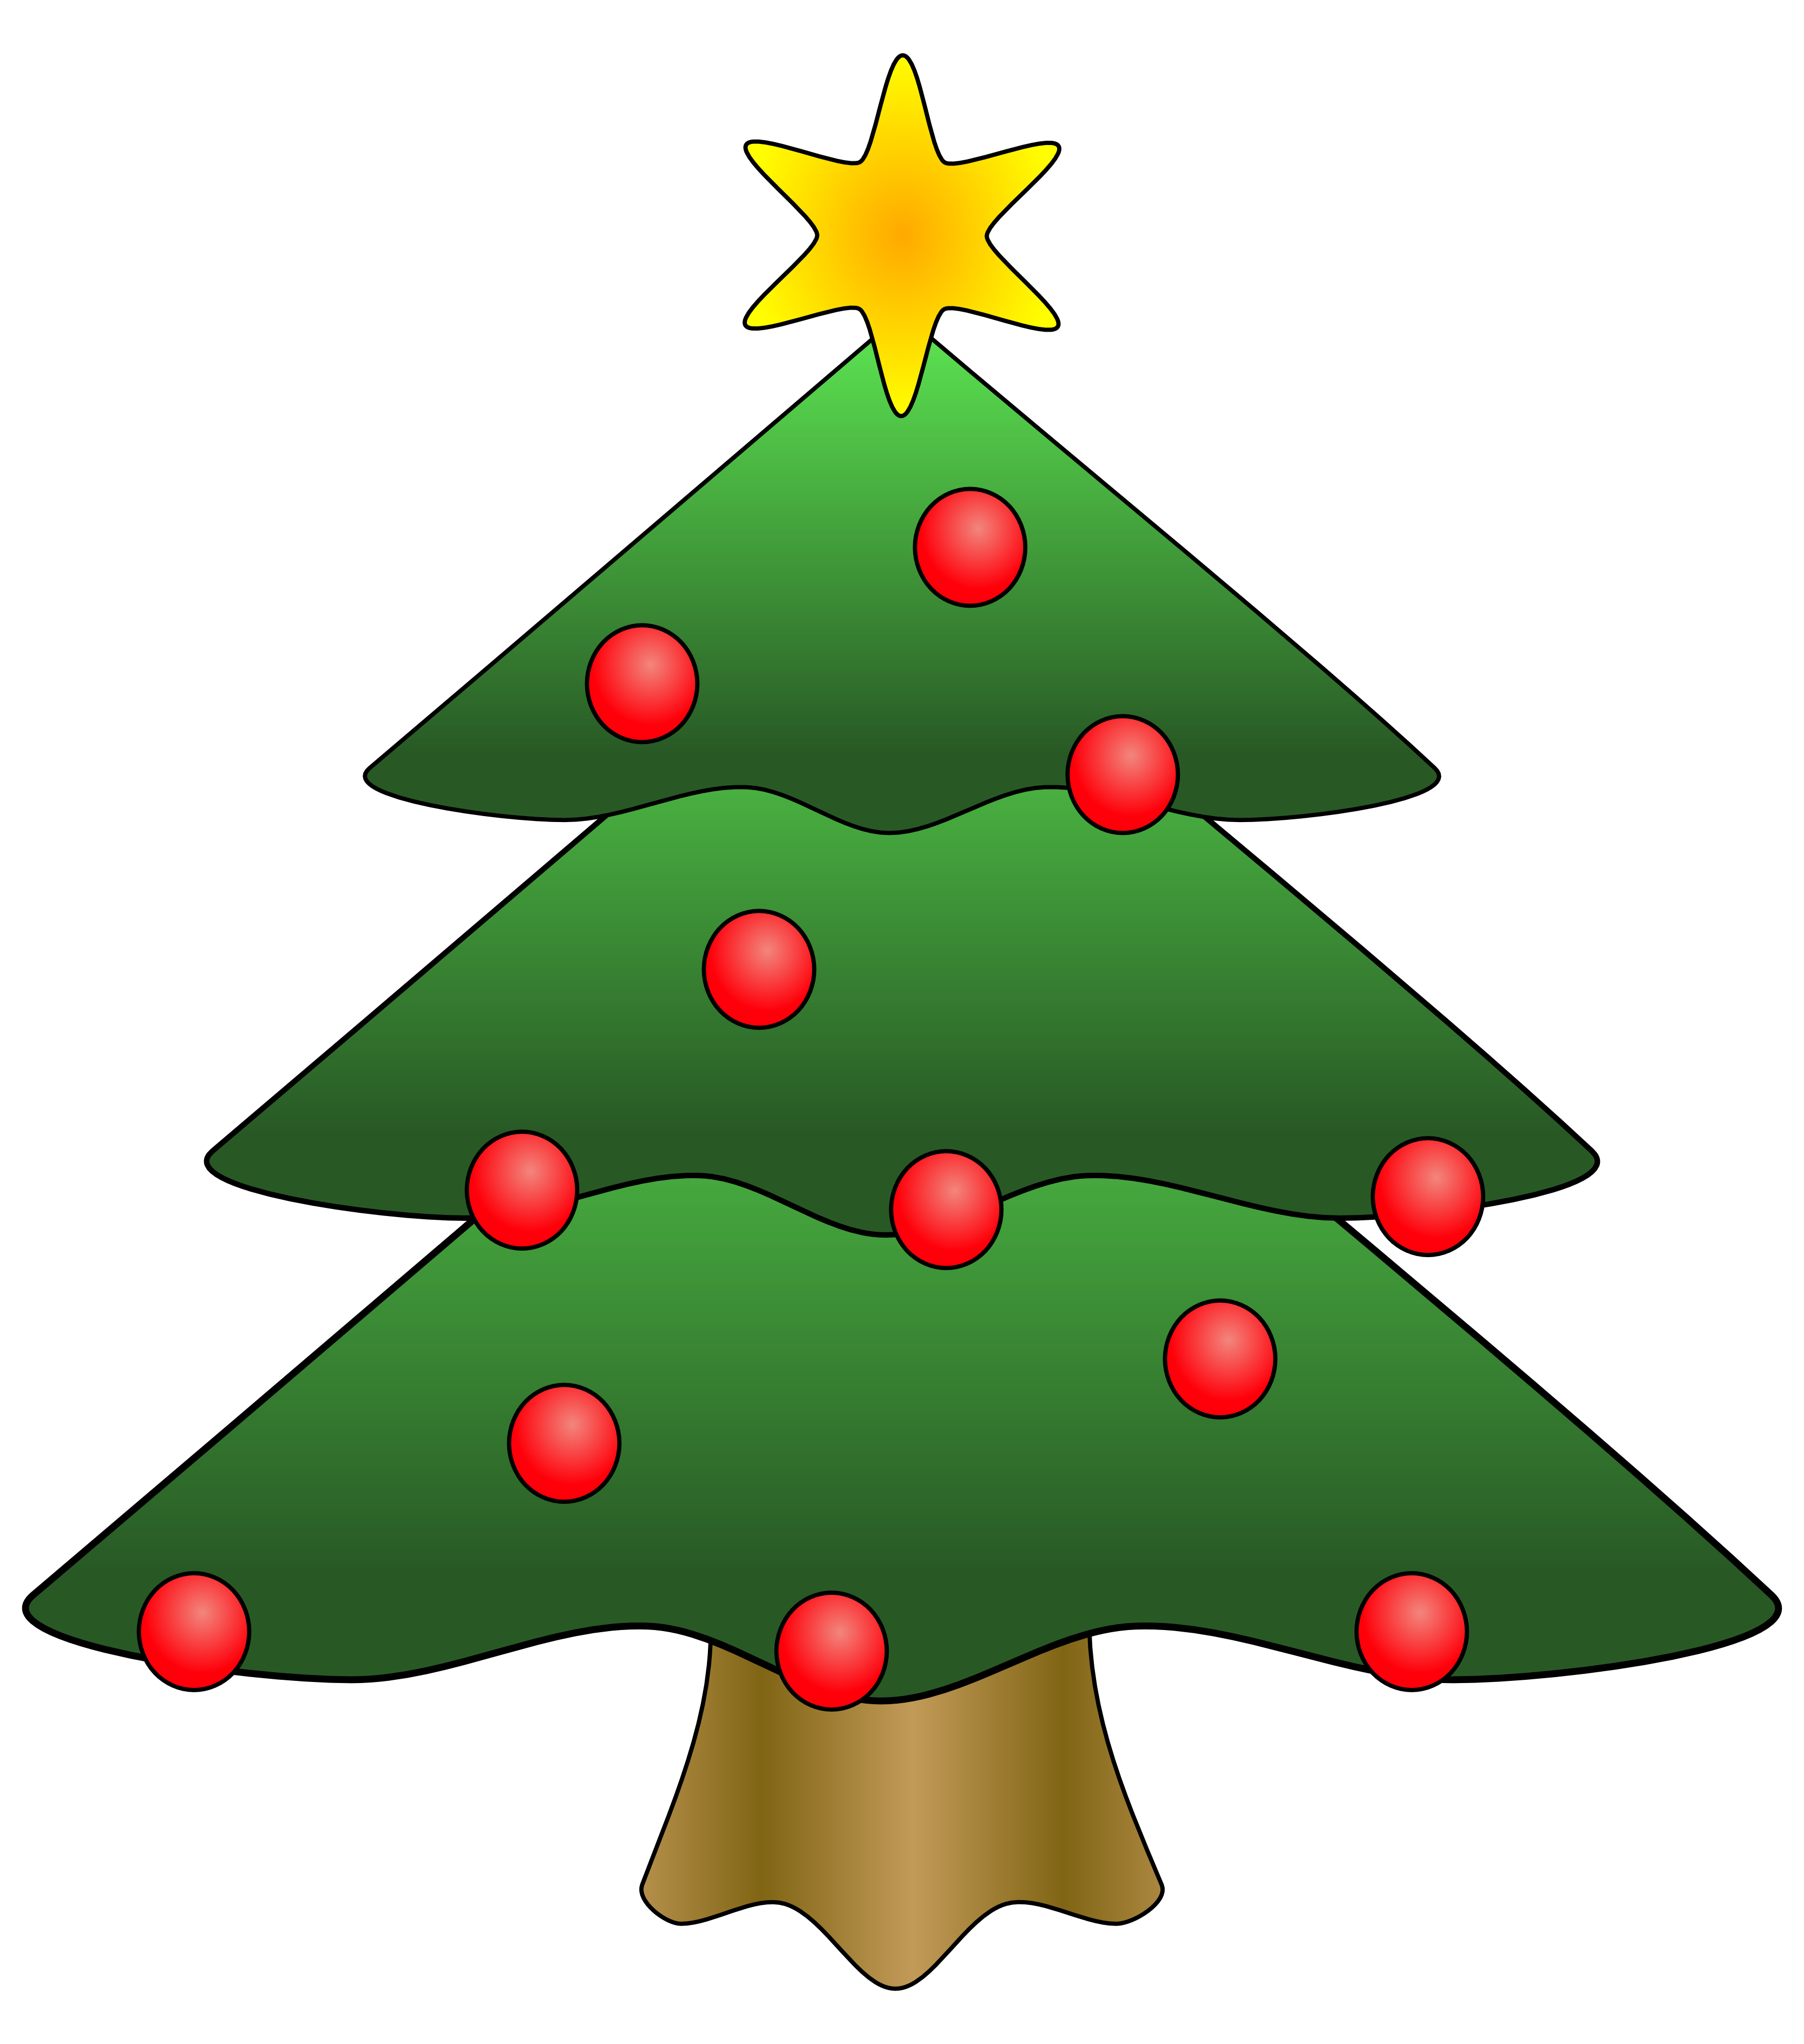 Clip Art Christmas Tree | Clipart library - Free Clipart Images